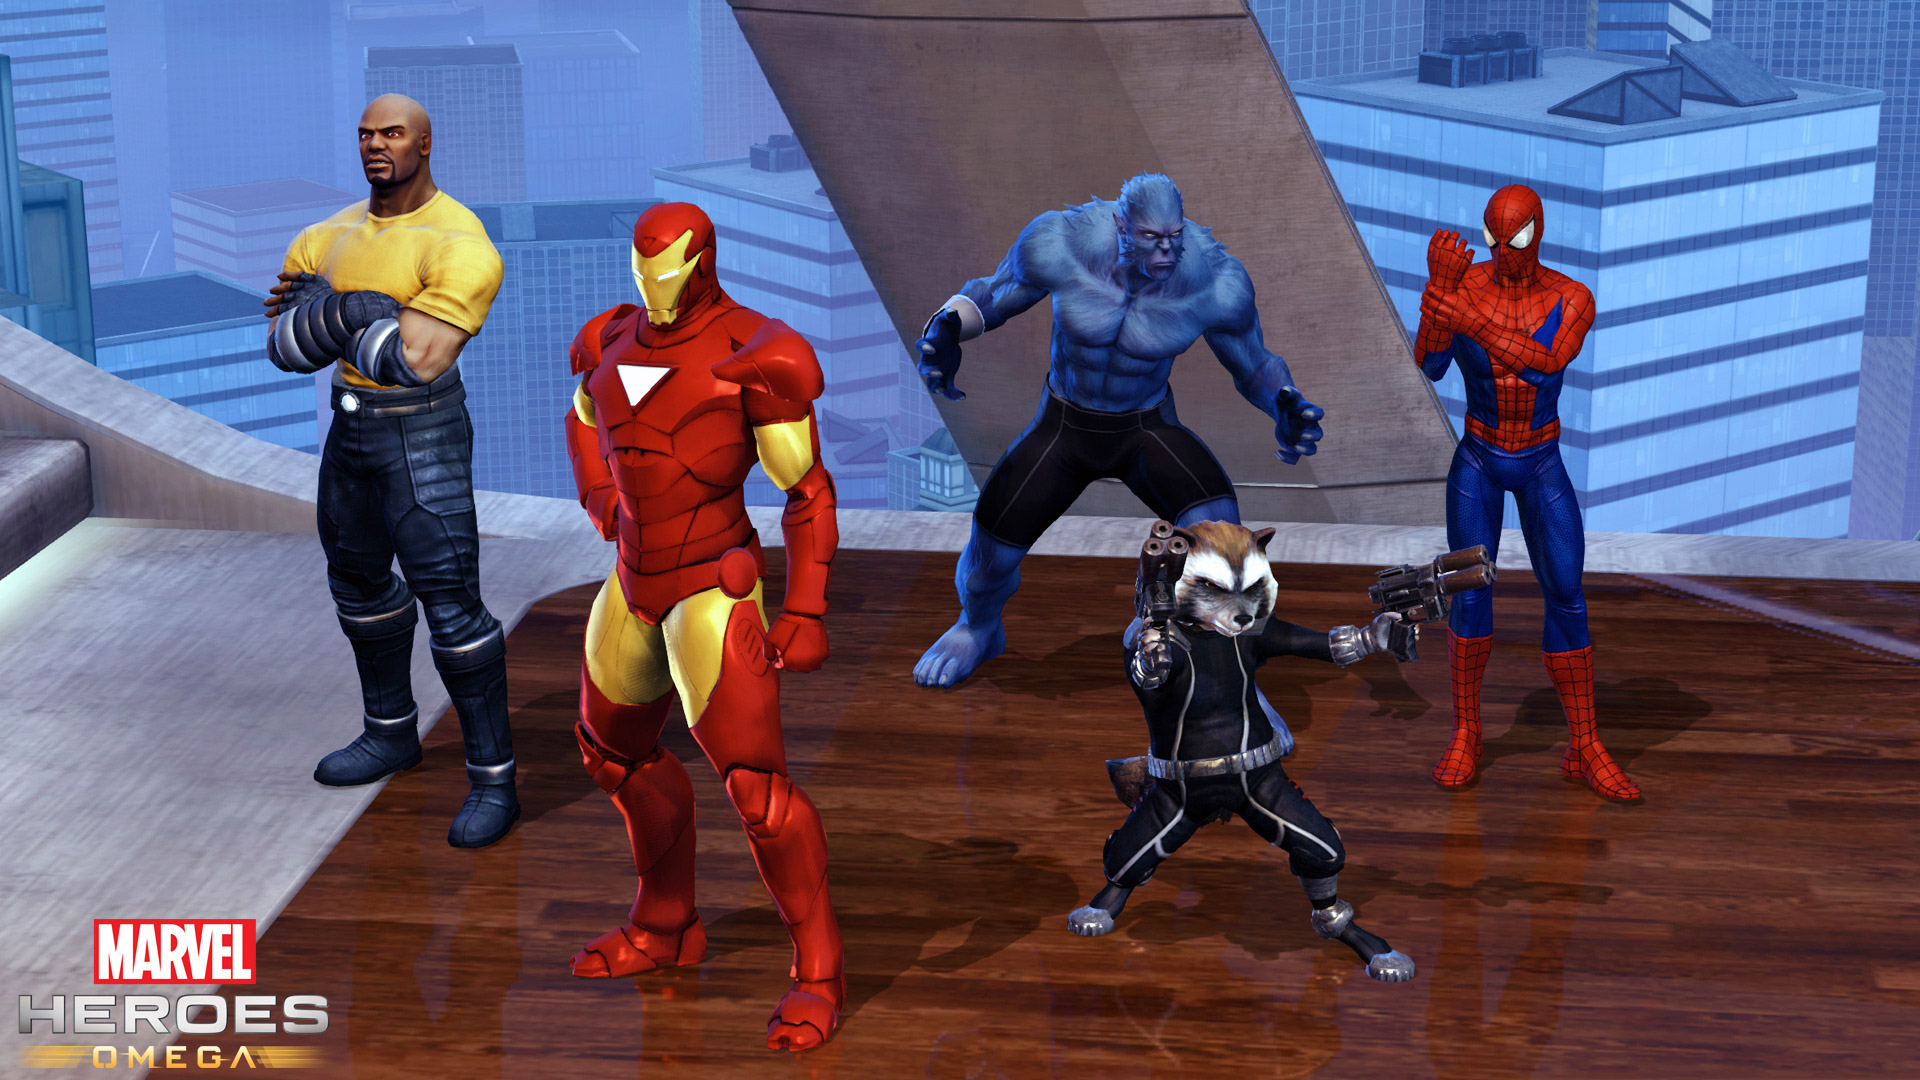 Free Marvel Heroes Wallpaper in 1920x1080